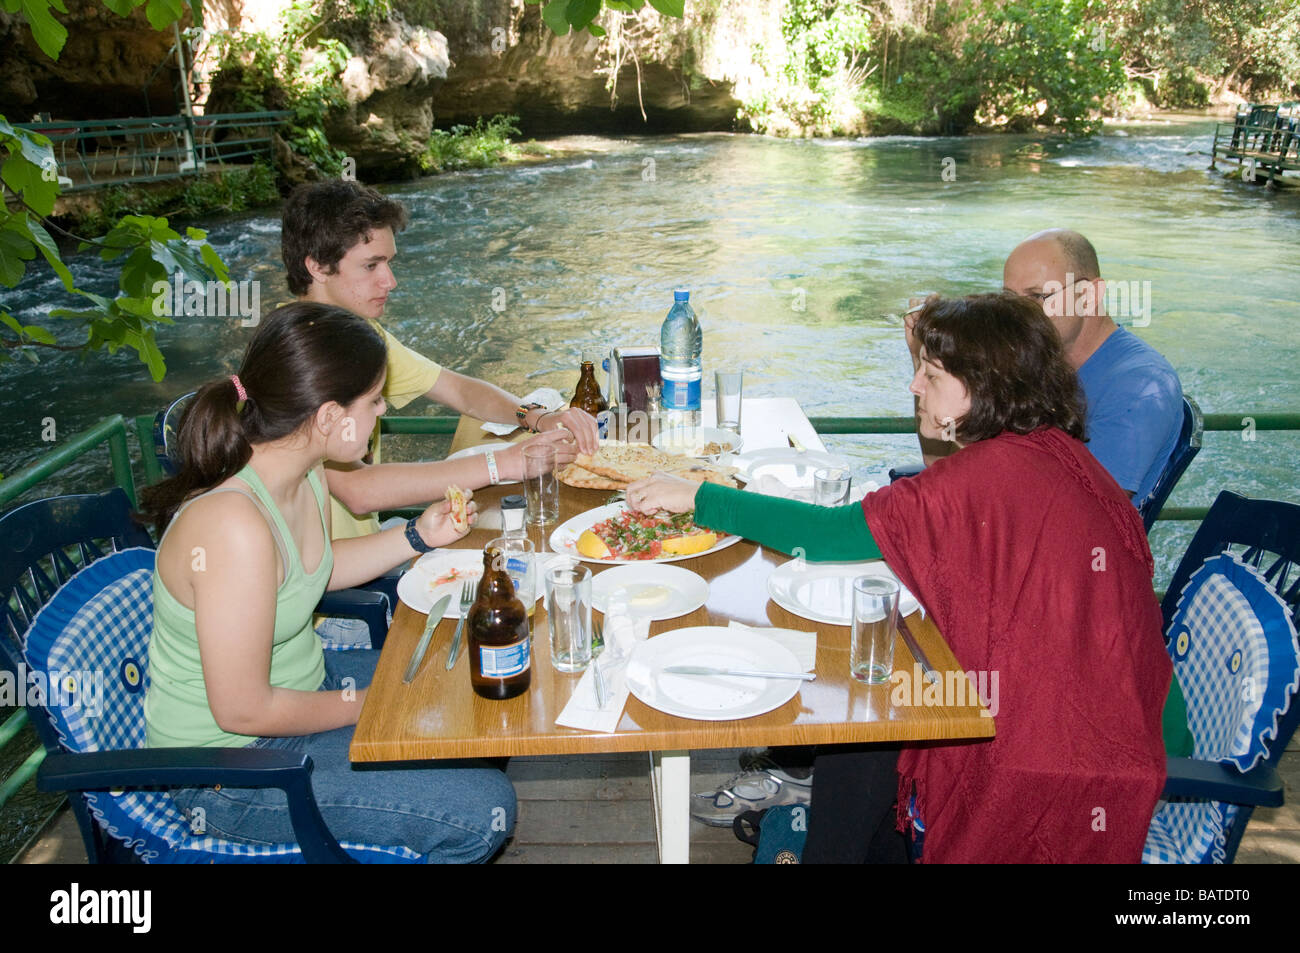 Turkey Antalya Upper Duden River A family at a fish restaurant on the river front Model Release Available - Stock Image